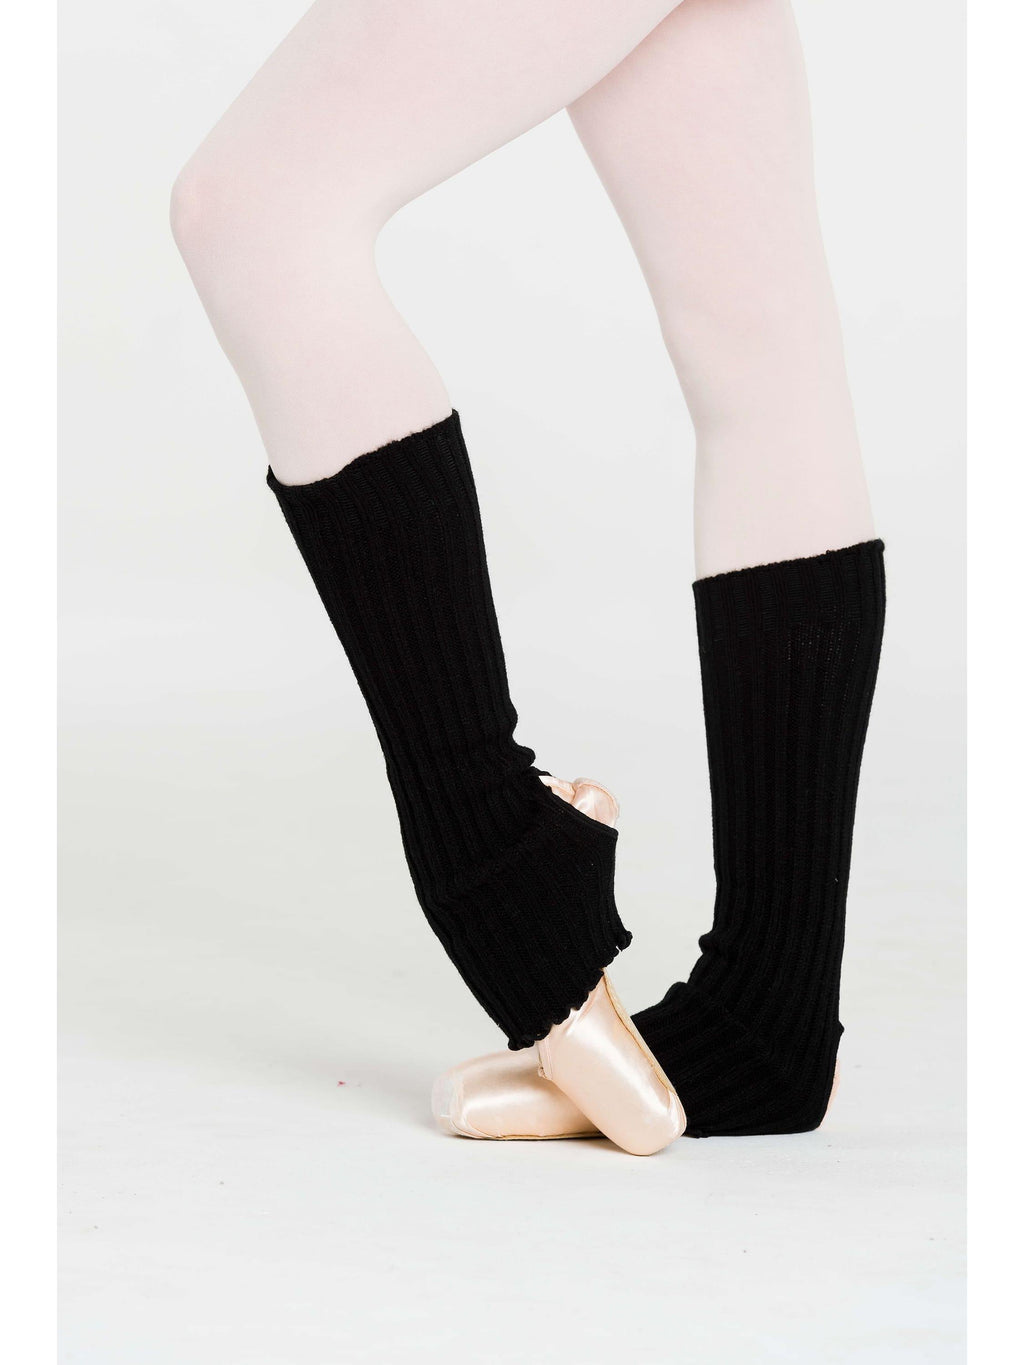 40cm Stirrup Ankle / Leg Warmers Black Novelties